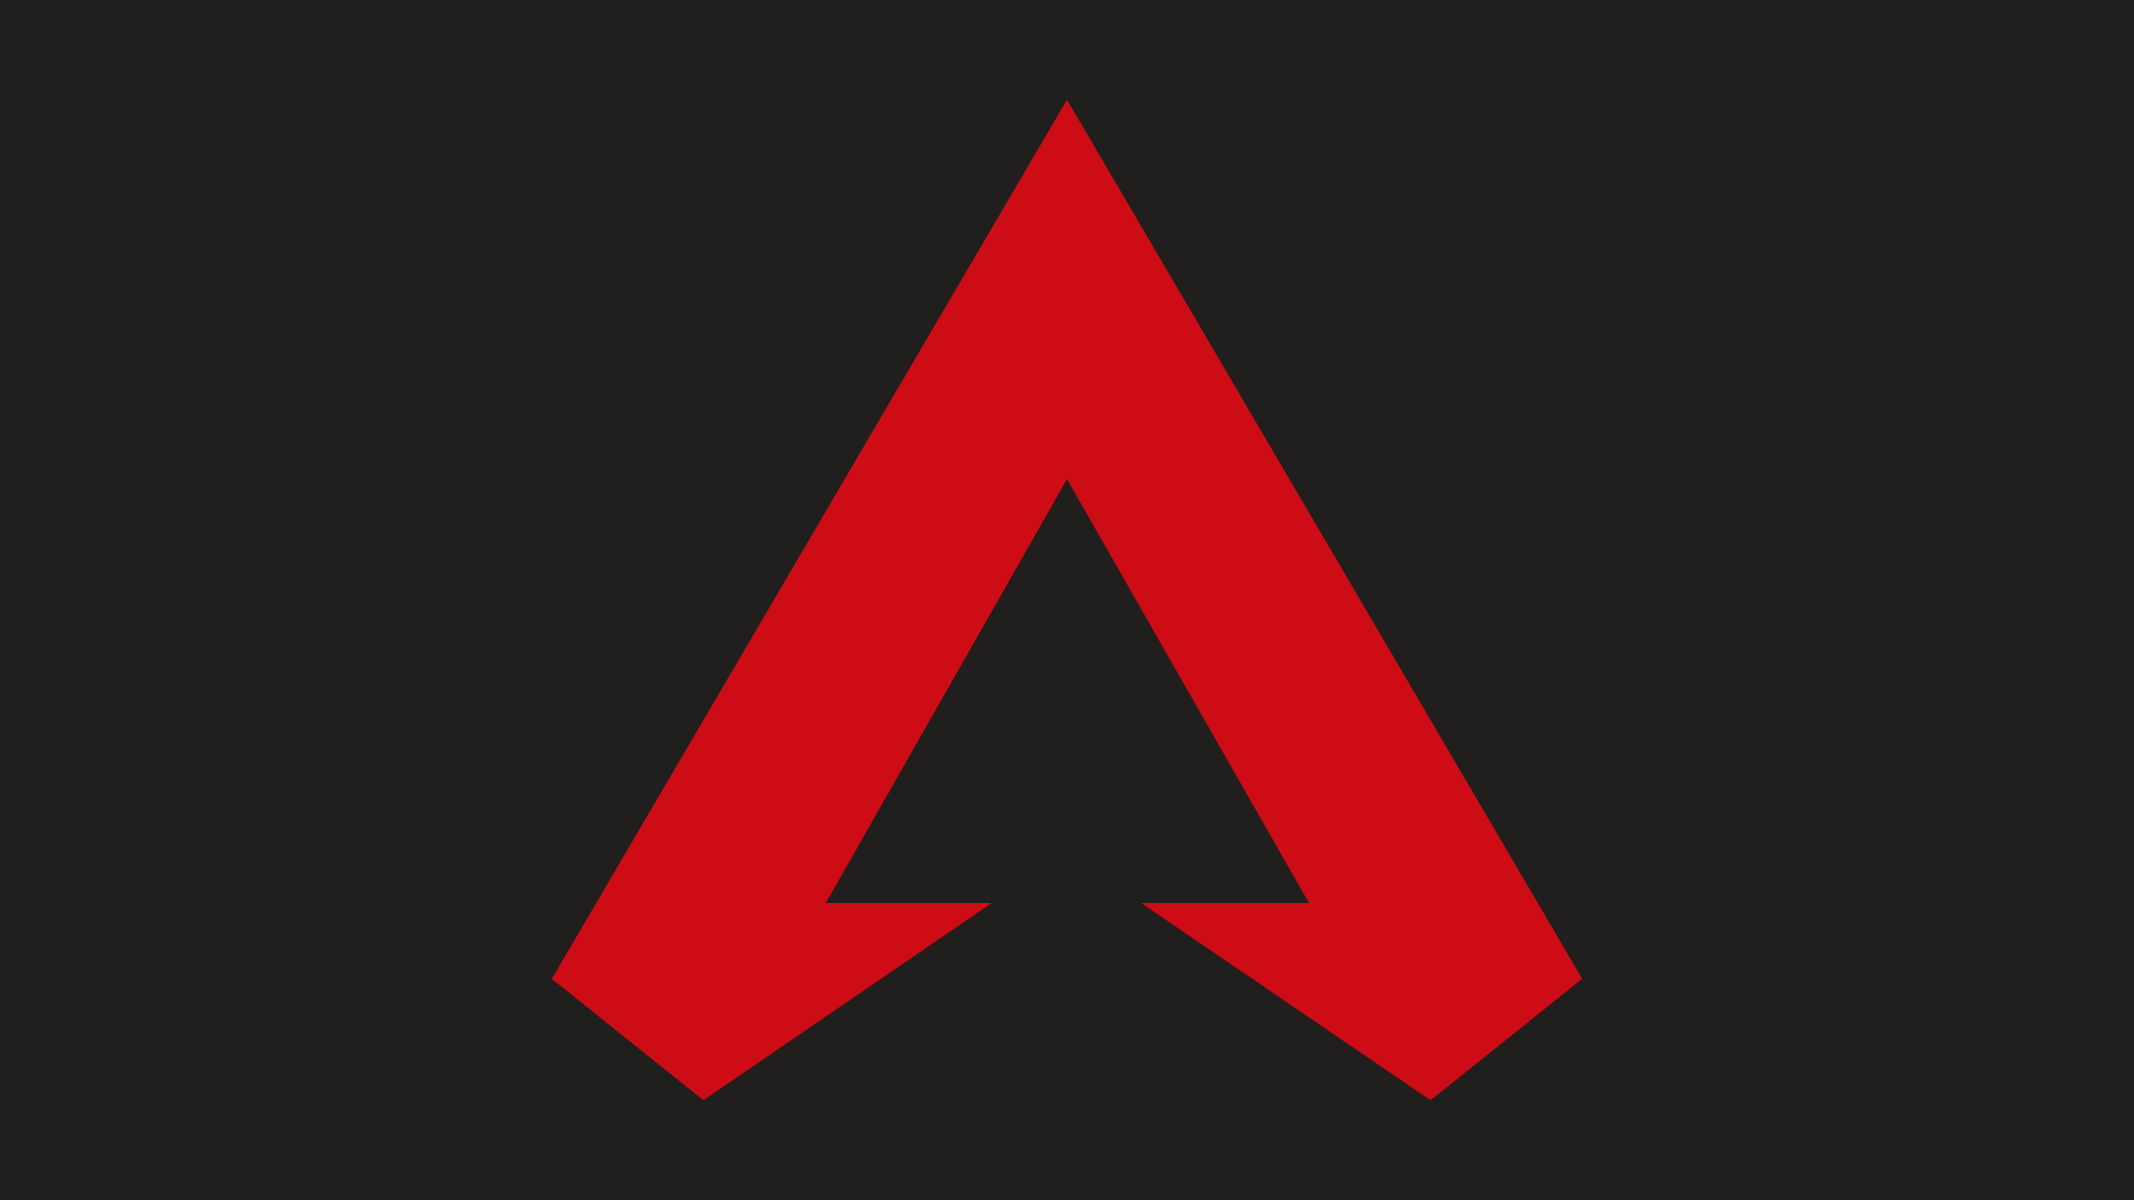 GitHub - SteeledSlagle13/ApexLegendsImages: Contains ...